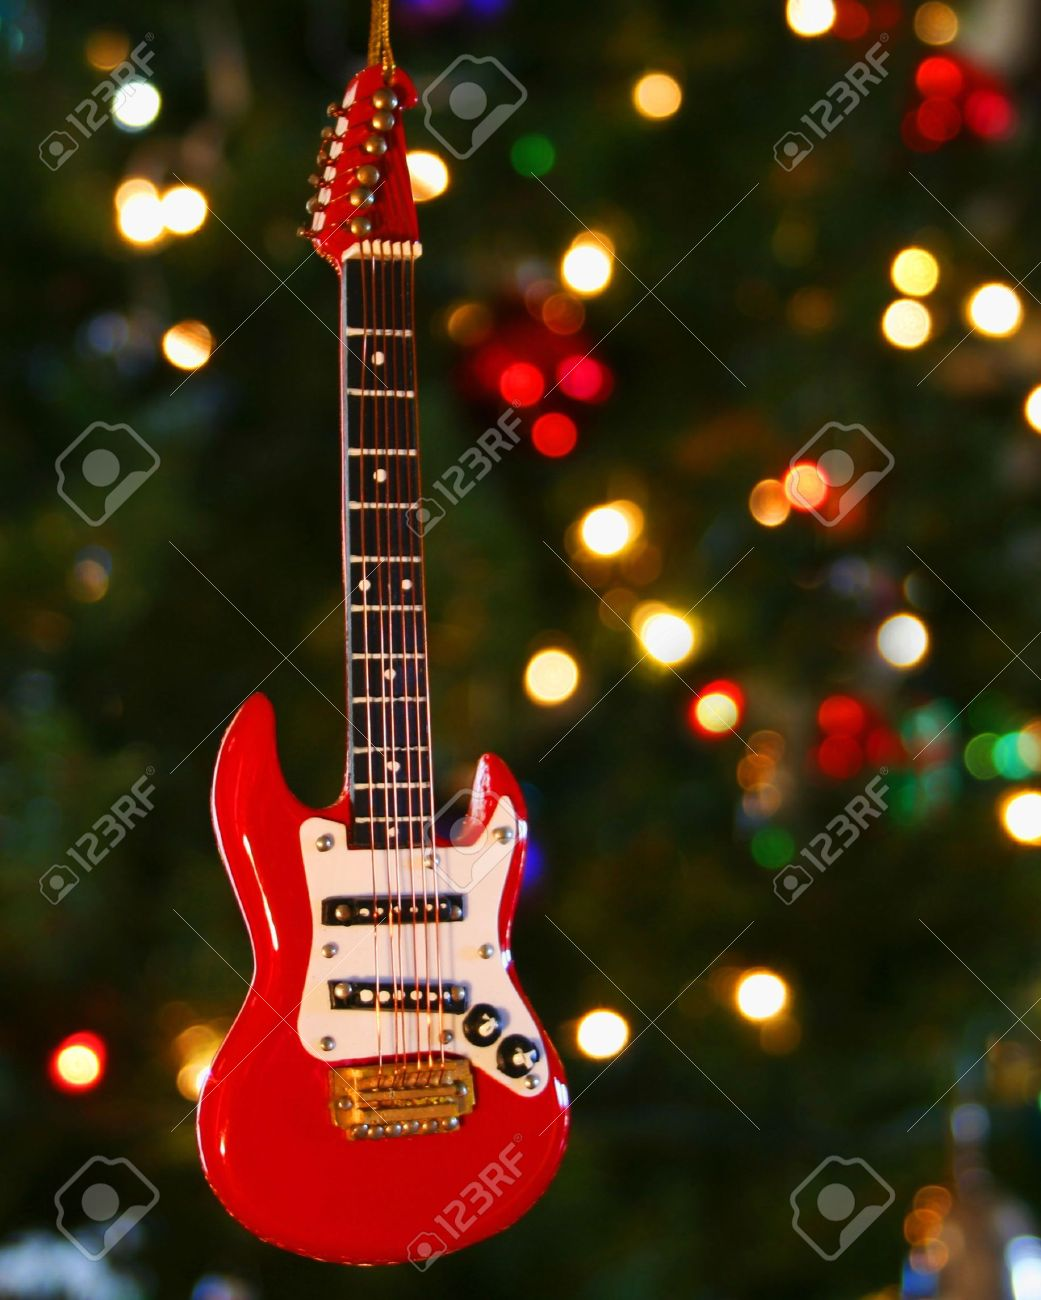 A Red Electric Guitar Ornament And Lights On A Christmas Tree ...